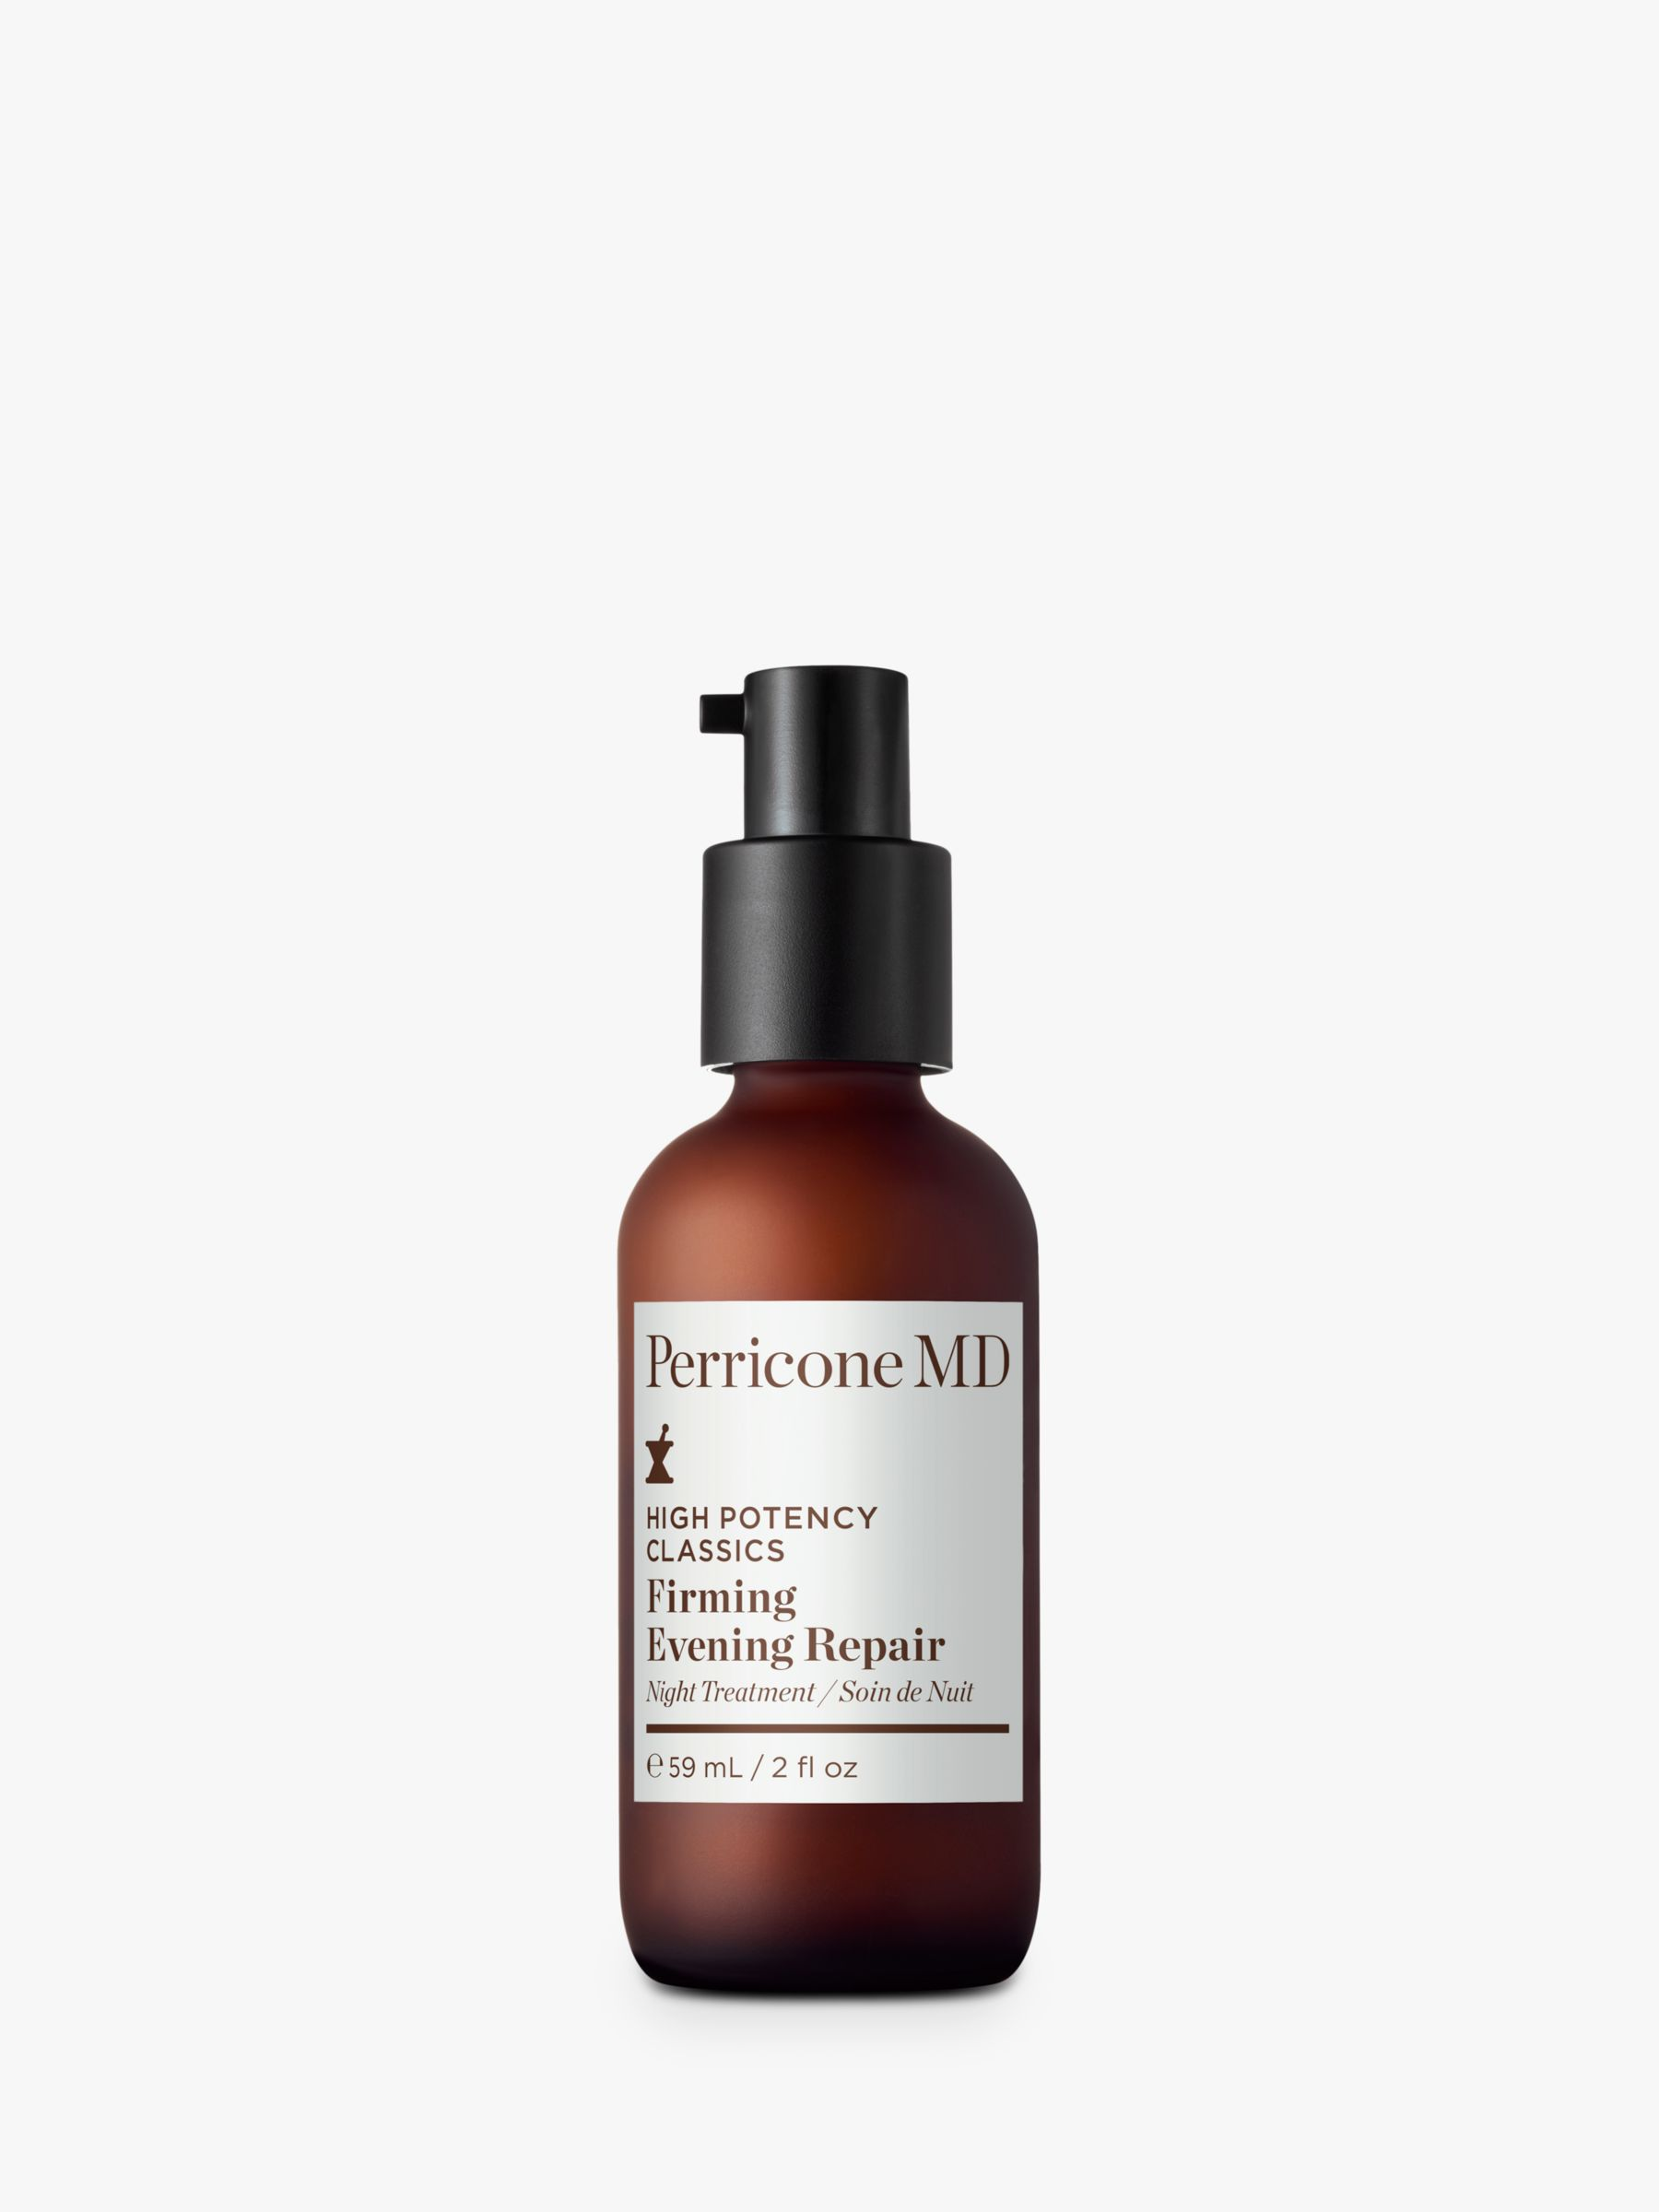 Perricone MD Perricone MD High Potency Classics Firming Evening Repair, 59ml